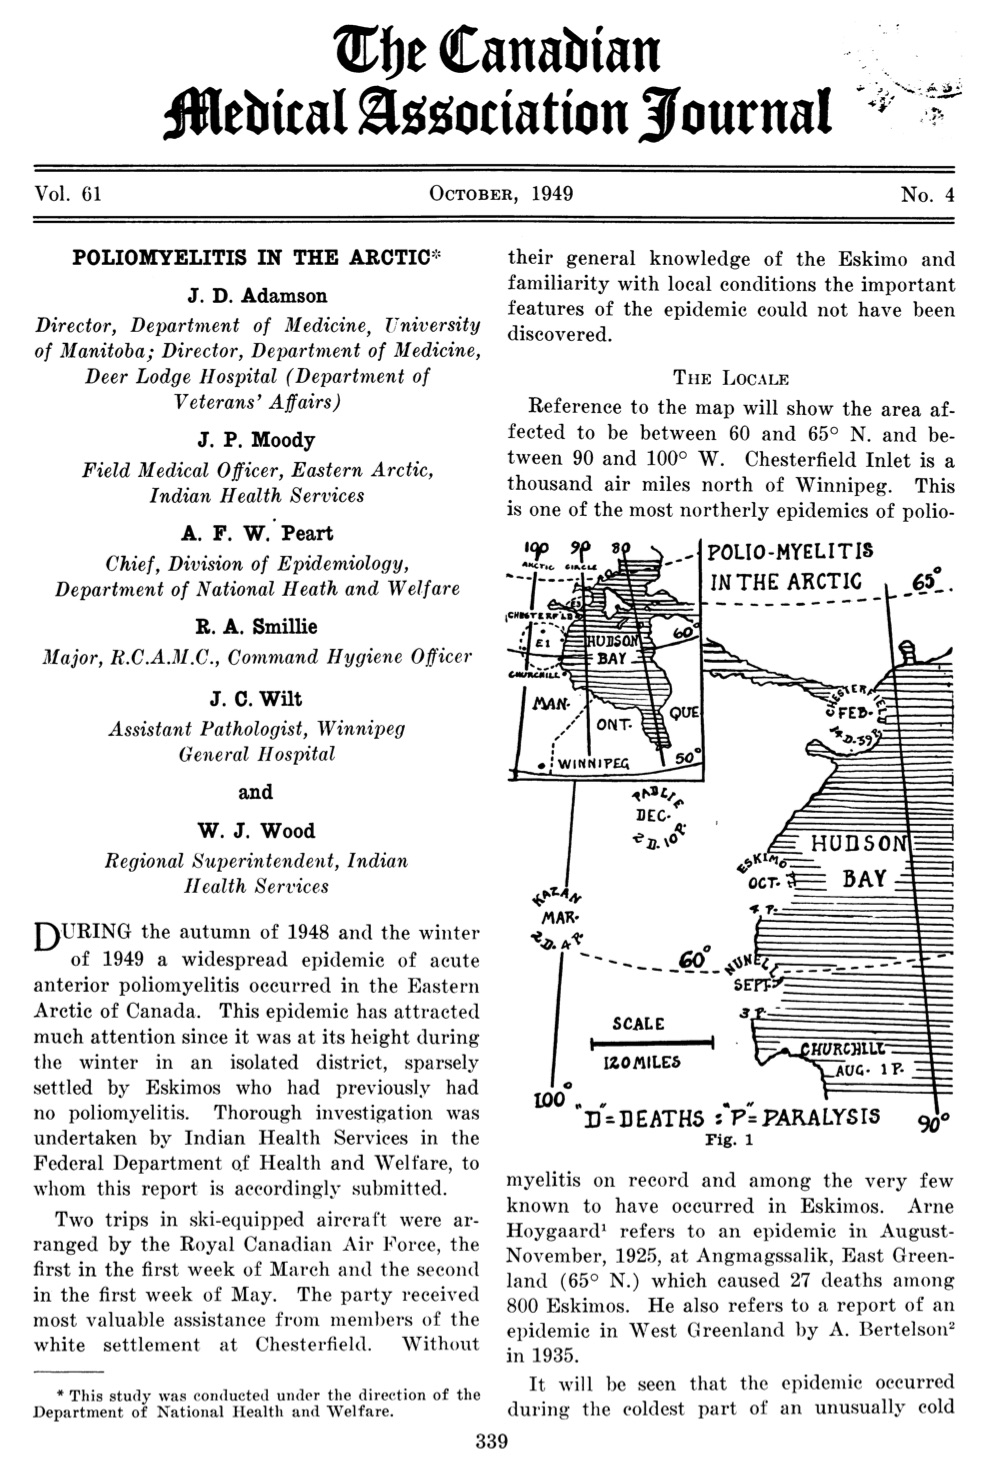 Opening page of a detailed report in the October 1949 issue of the Canadian Medical Association Journal on the major Arctic polio epidemic that struck the Chesterfield Inlet area during the winter of 1948-49. The full article is available at https://www.ncbi.nlm.nih.gov/pmc/articles/PMC1591690/pdf/canmedaj00637-0002.pdf